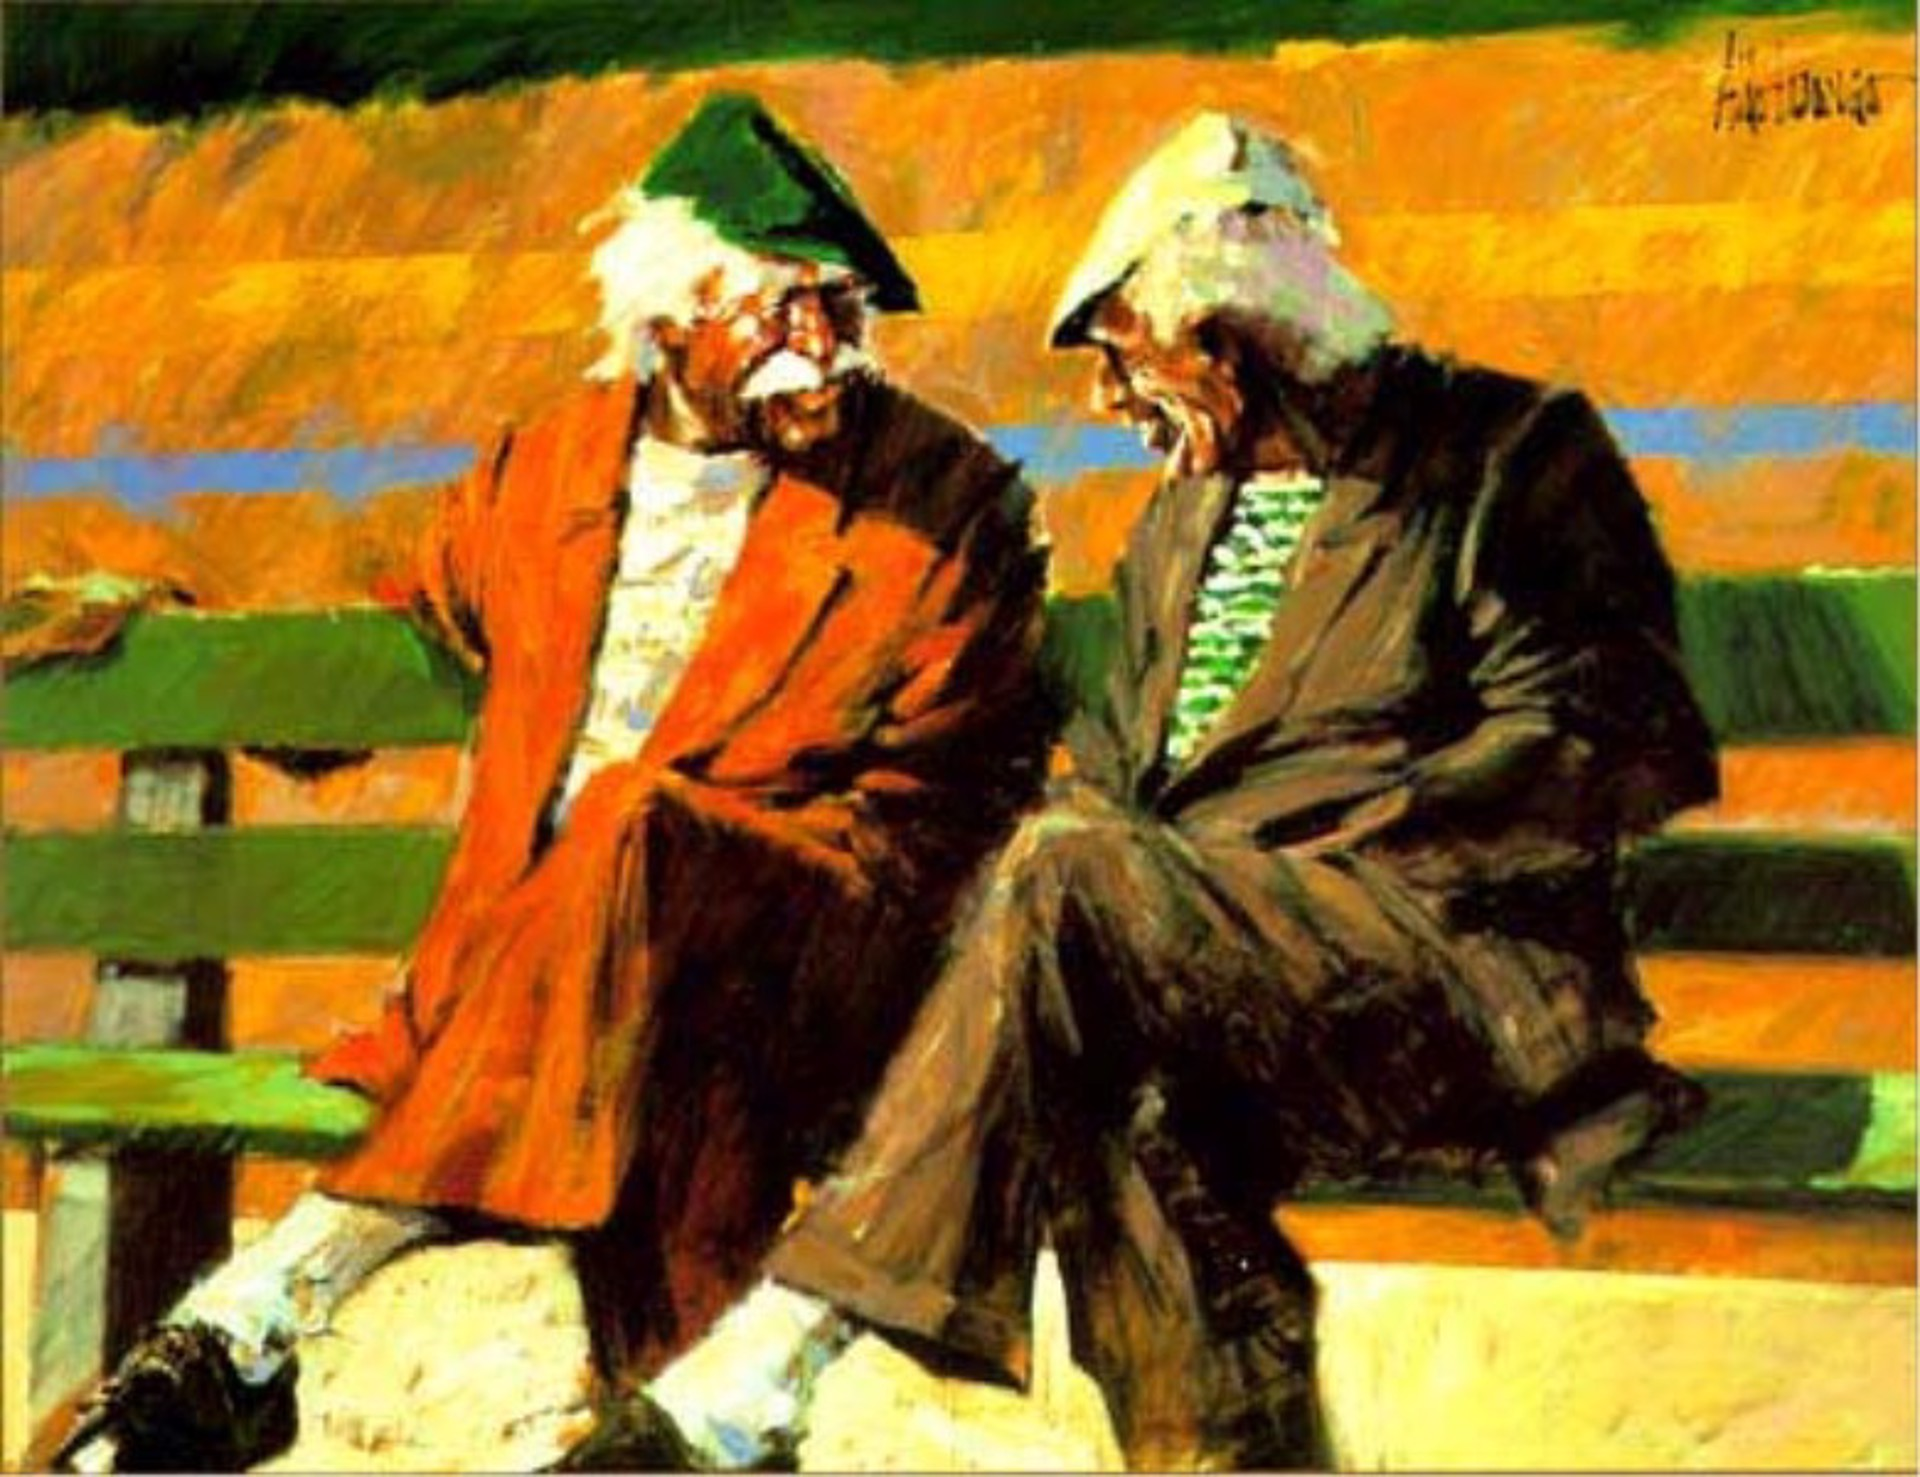 Telling Stories at the Bench by Aldo Luongo